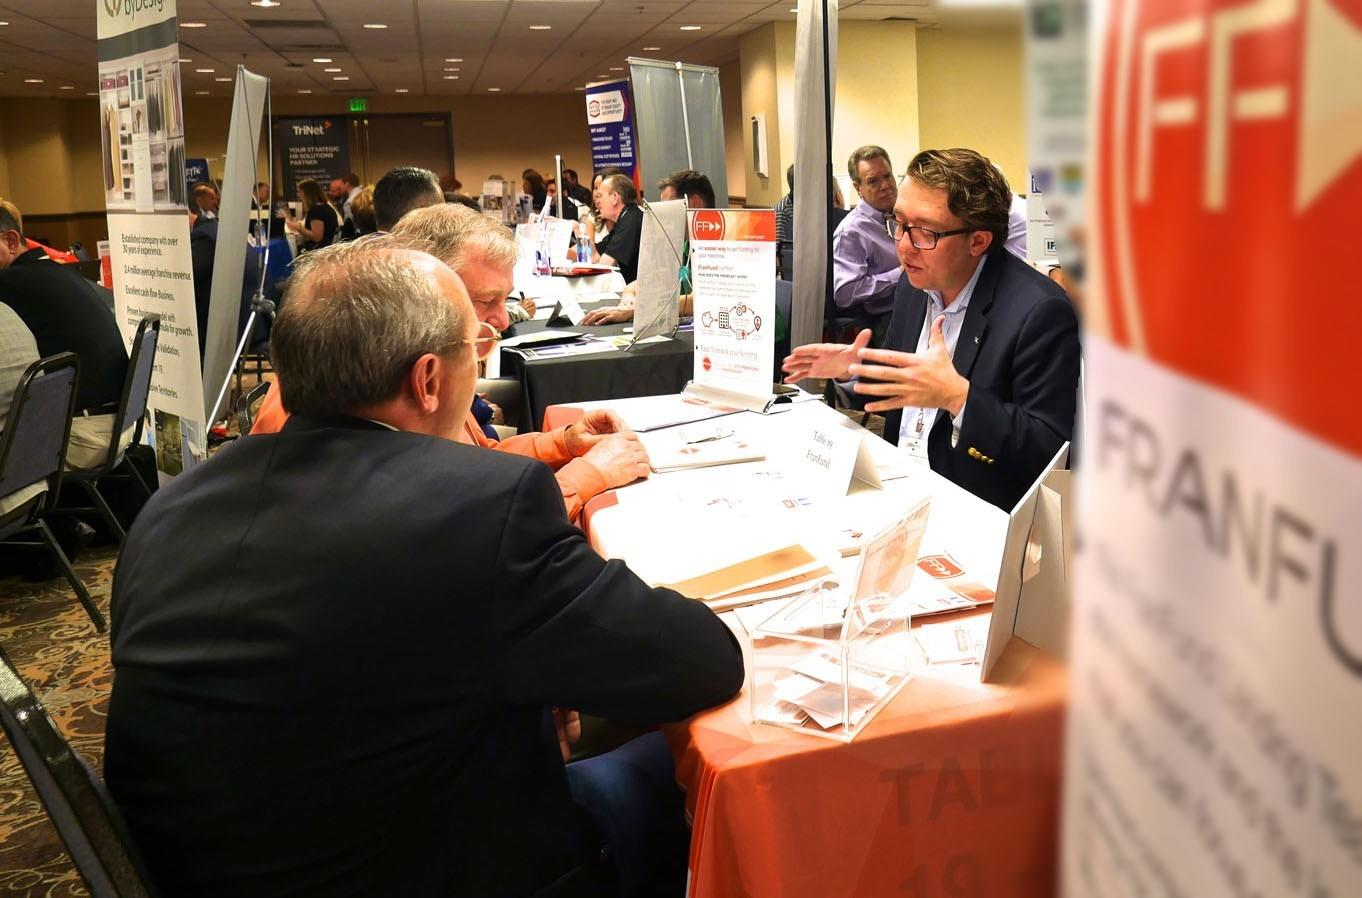 Franchise Consultants and Franchisors Networking